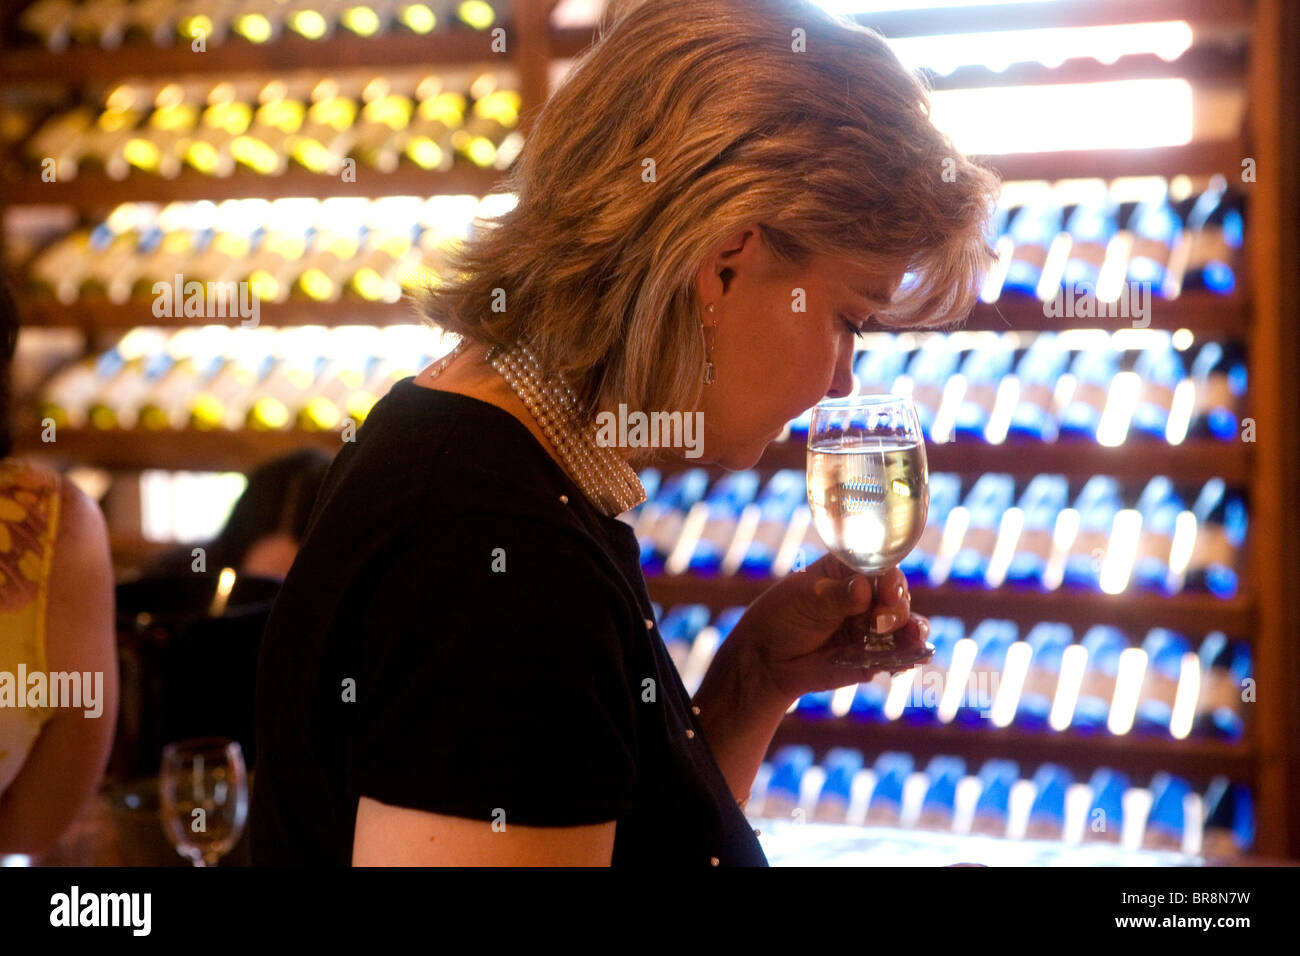 A woman tastes wine in Charlottesville VA. - Stock Image